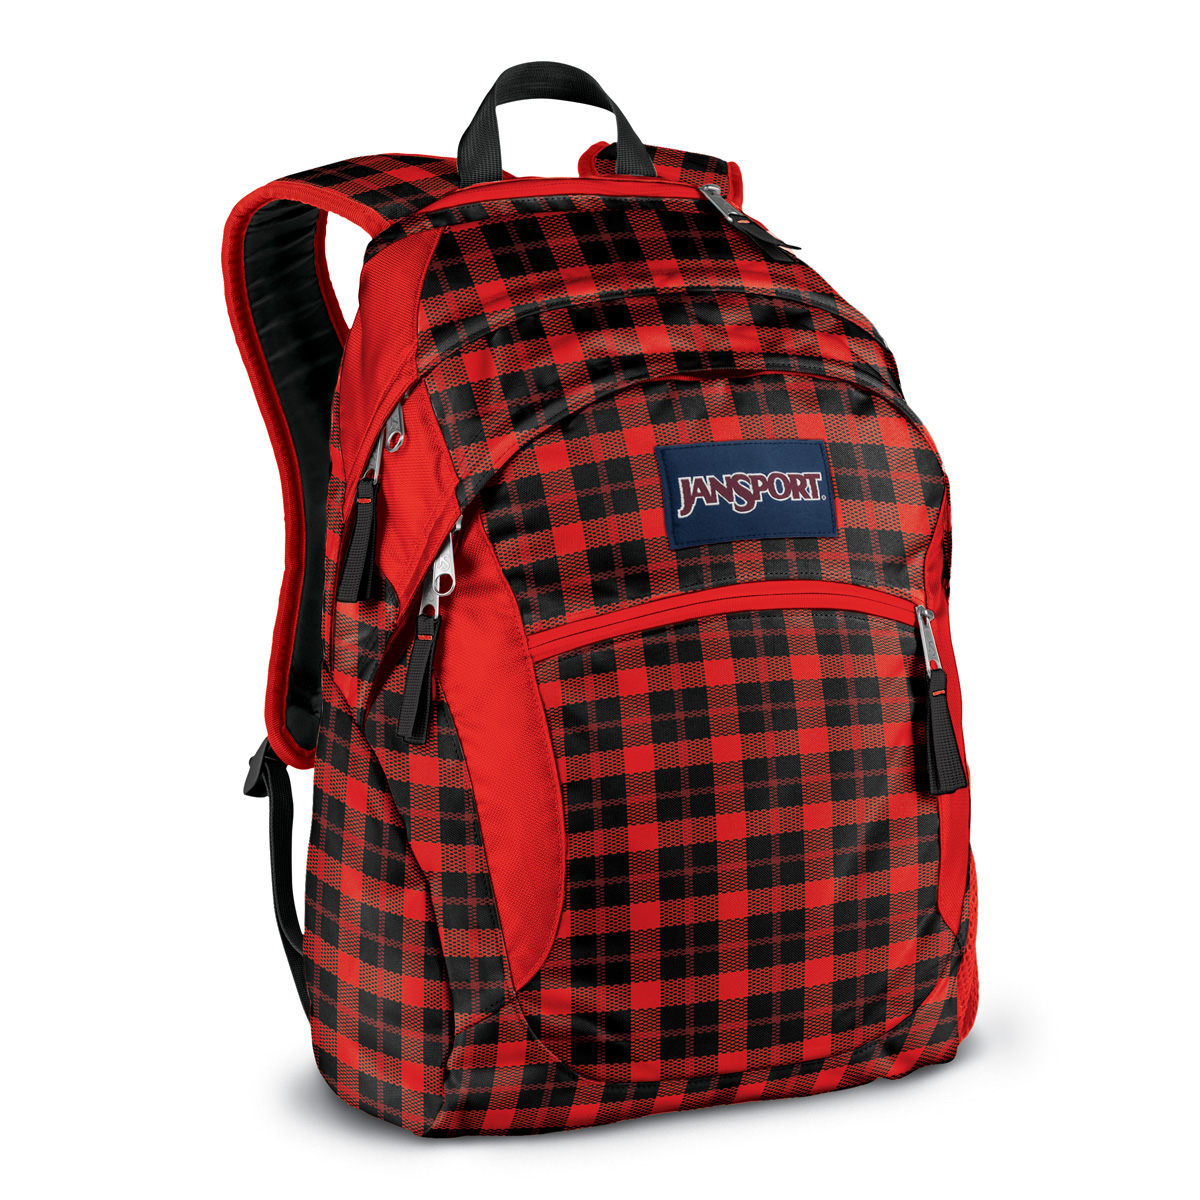 Where To Get Jansport Backpacks 1Px3FXkC